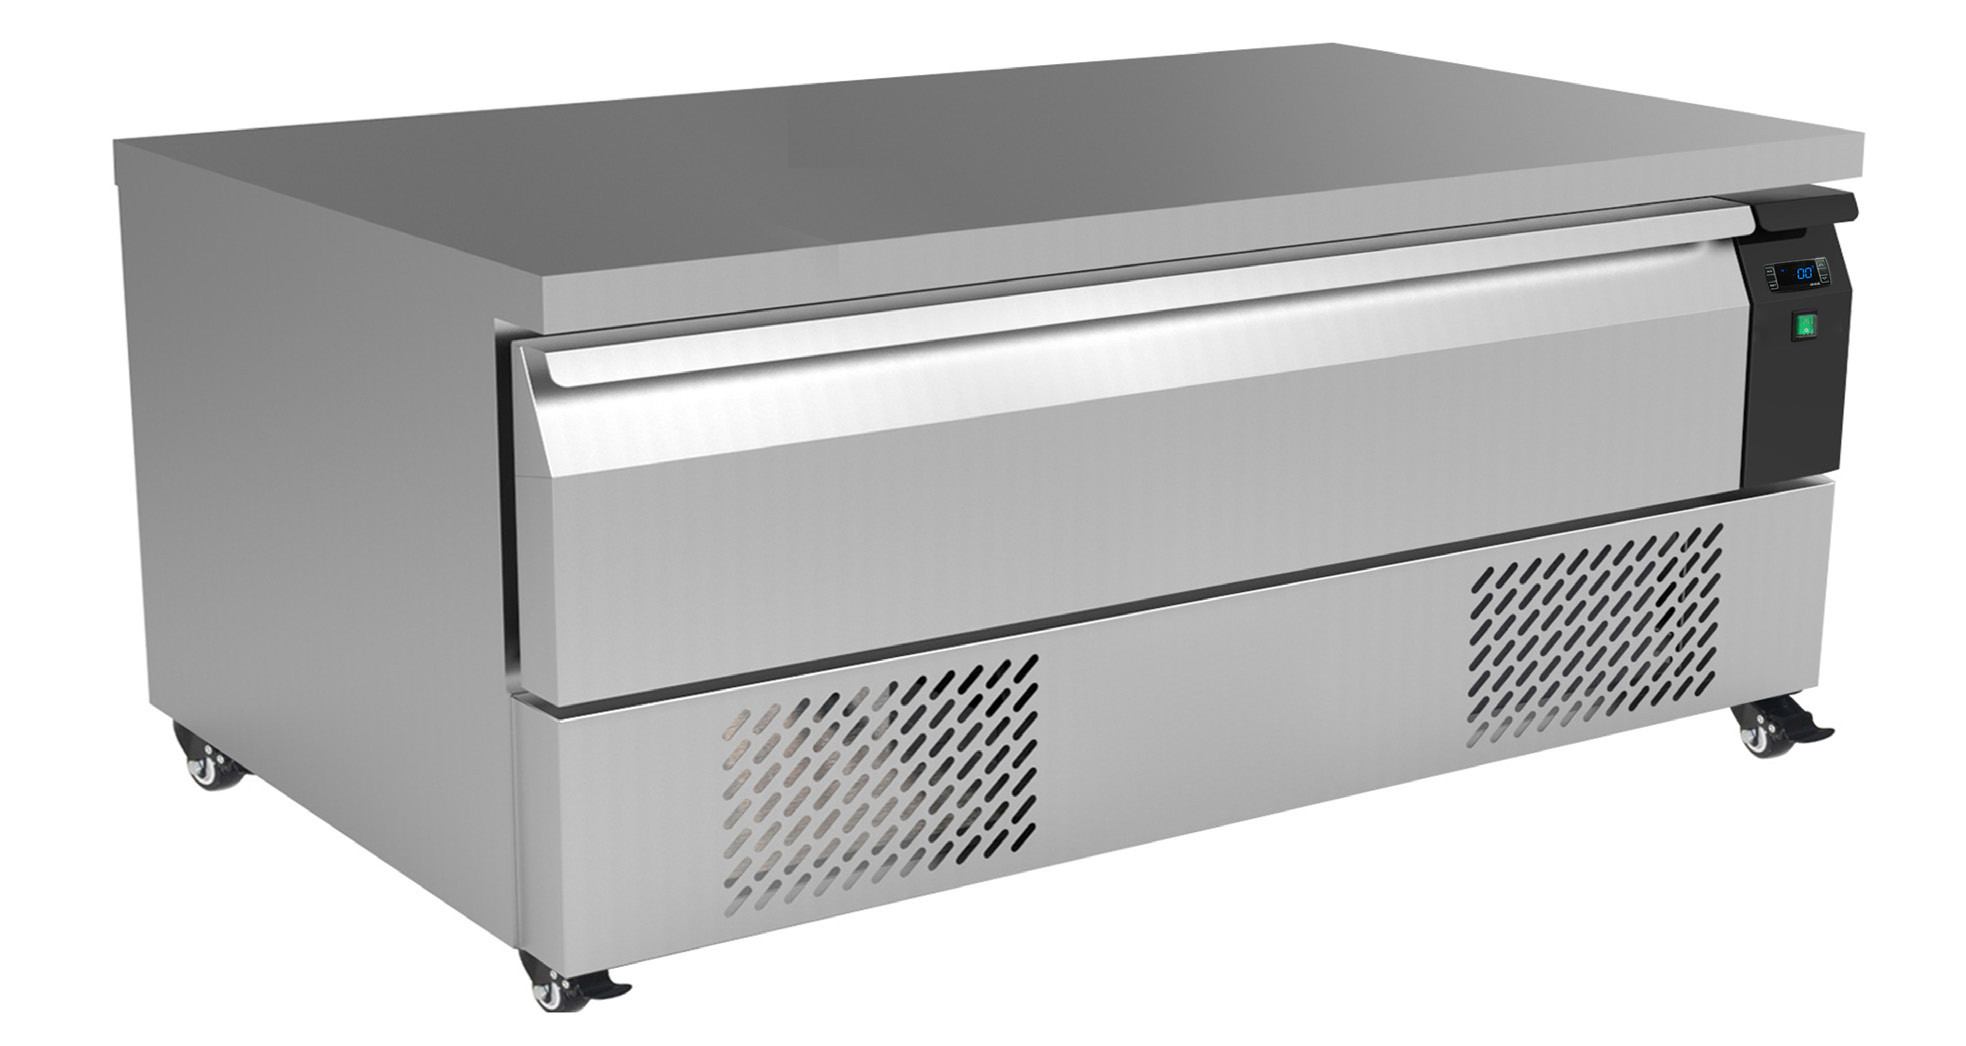 Unifrost EB-CF1200 Chiller - Freezer Counter